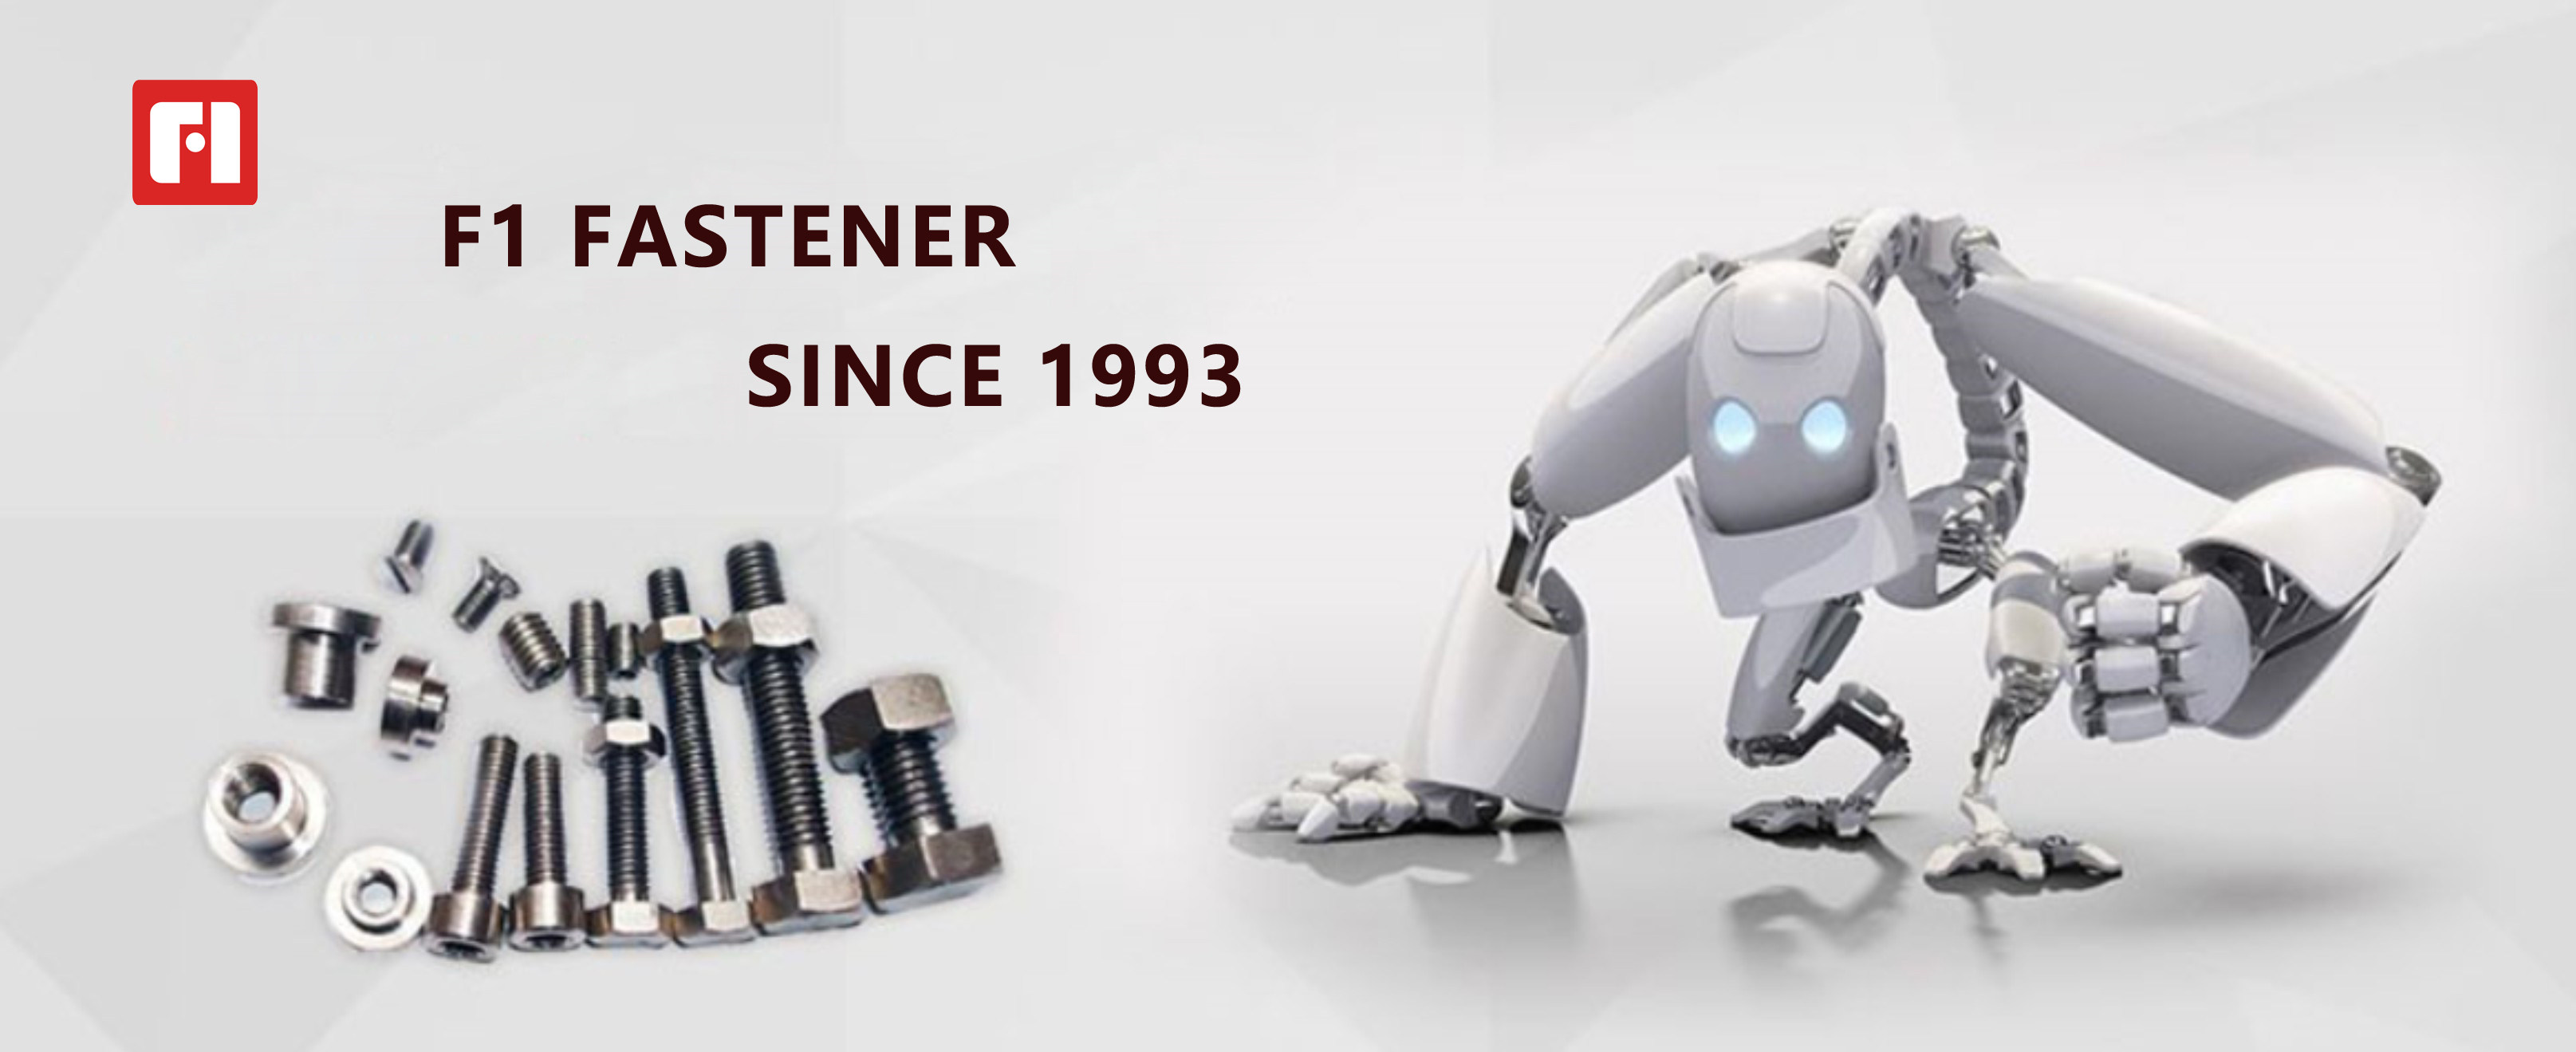 introduction of F1 fastener